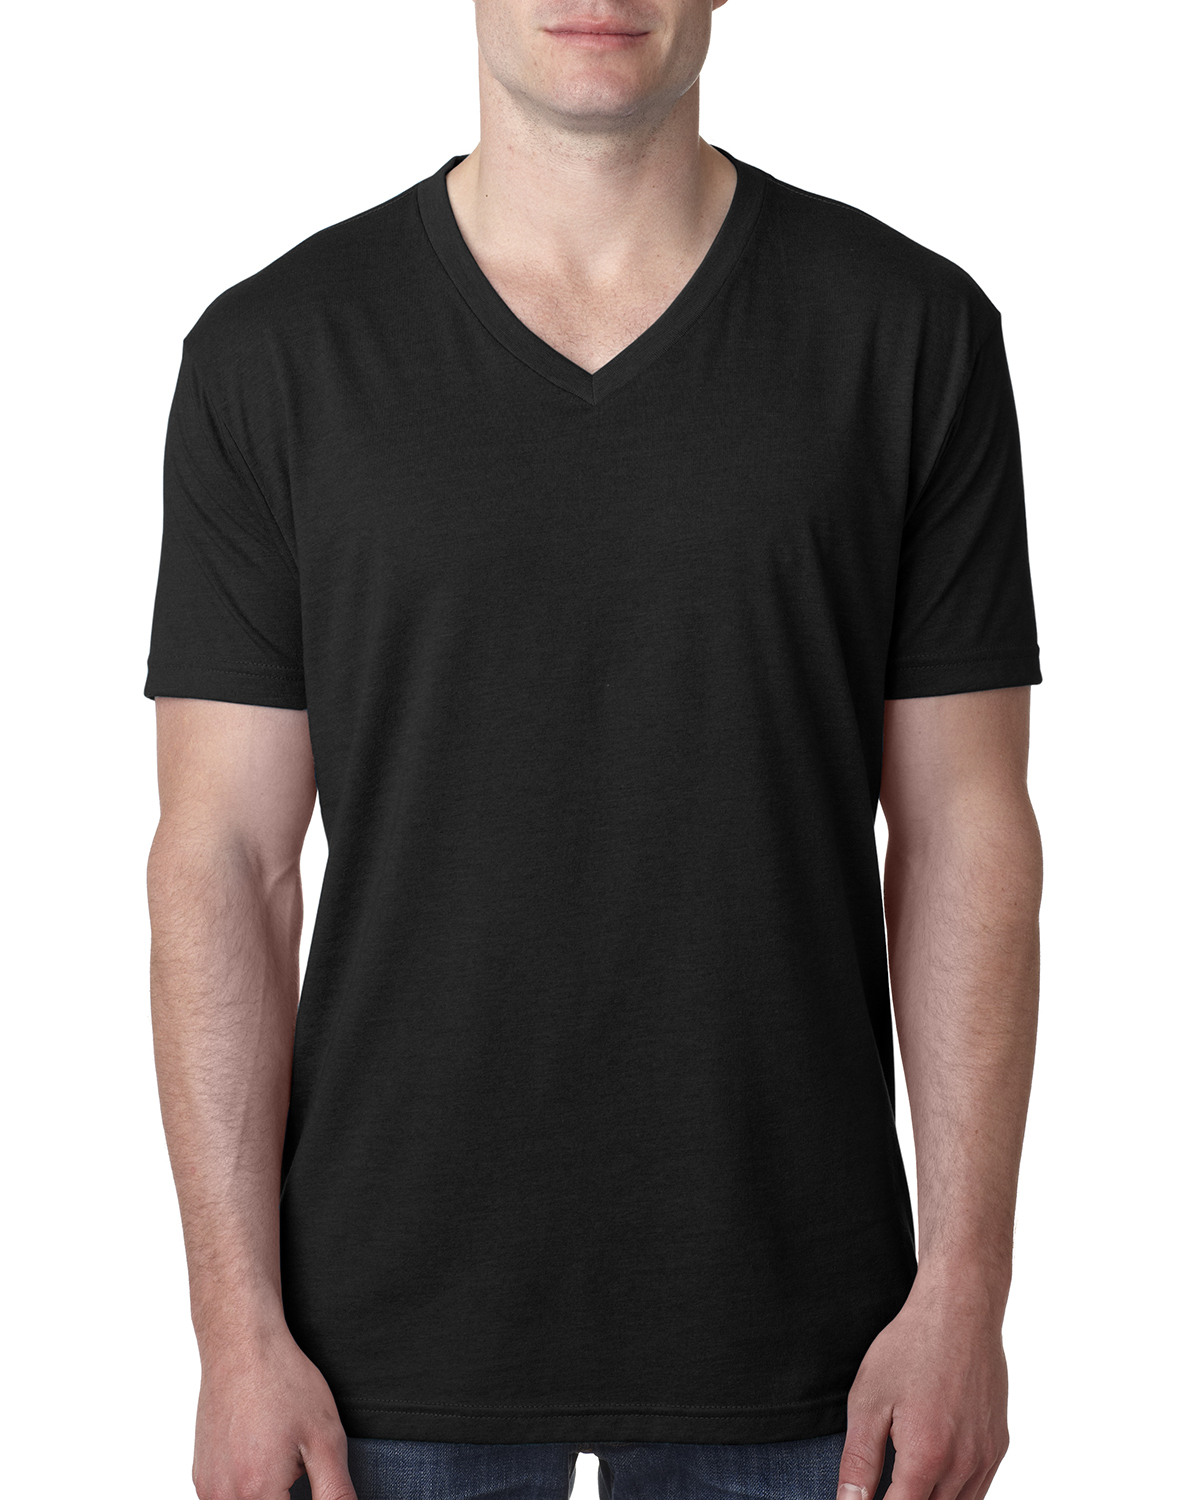 Next Level 6240-Mens CVC V-Neck Tee